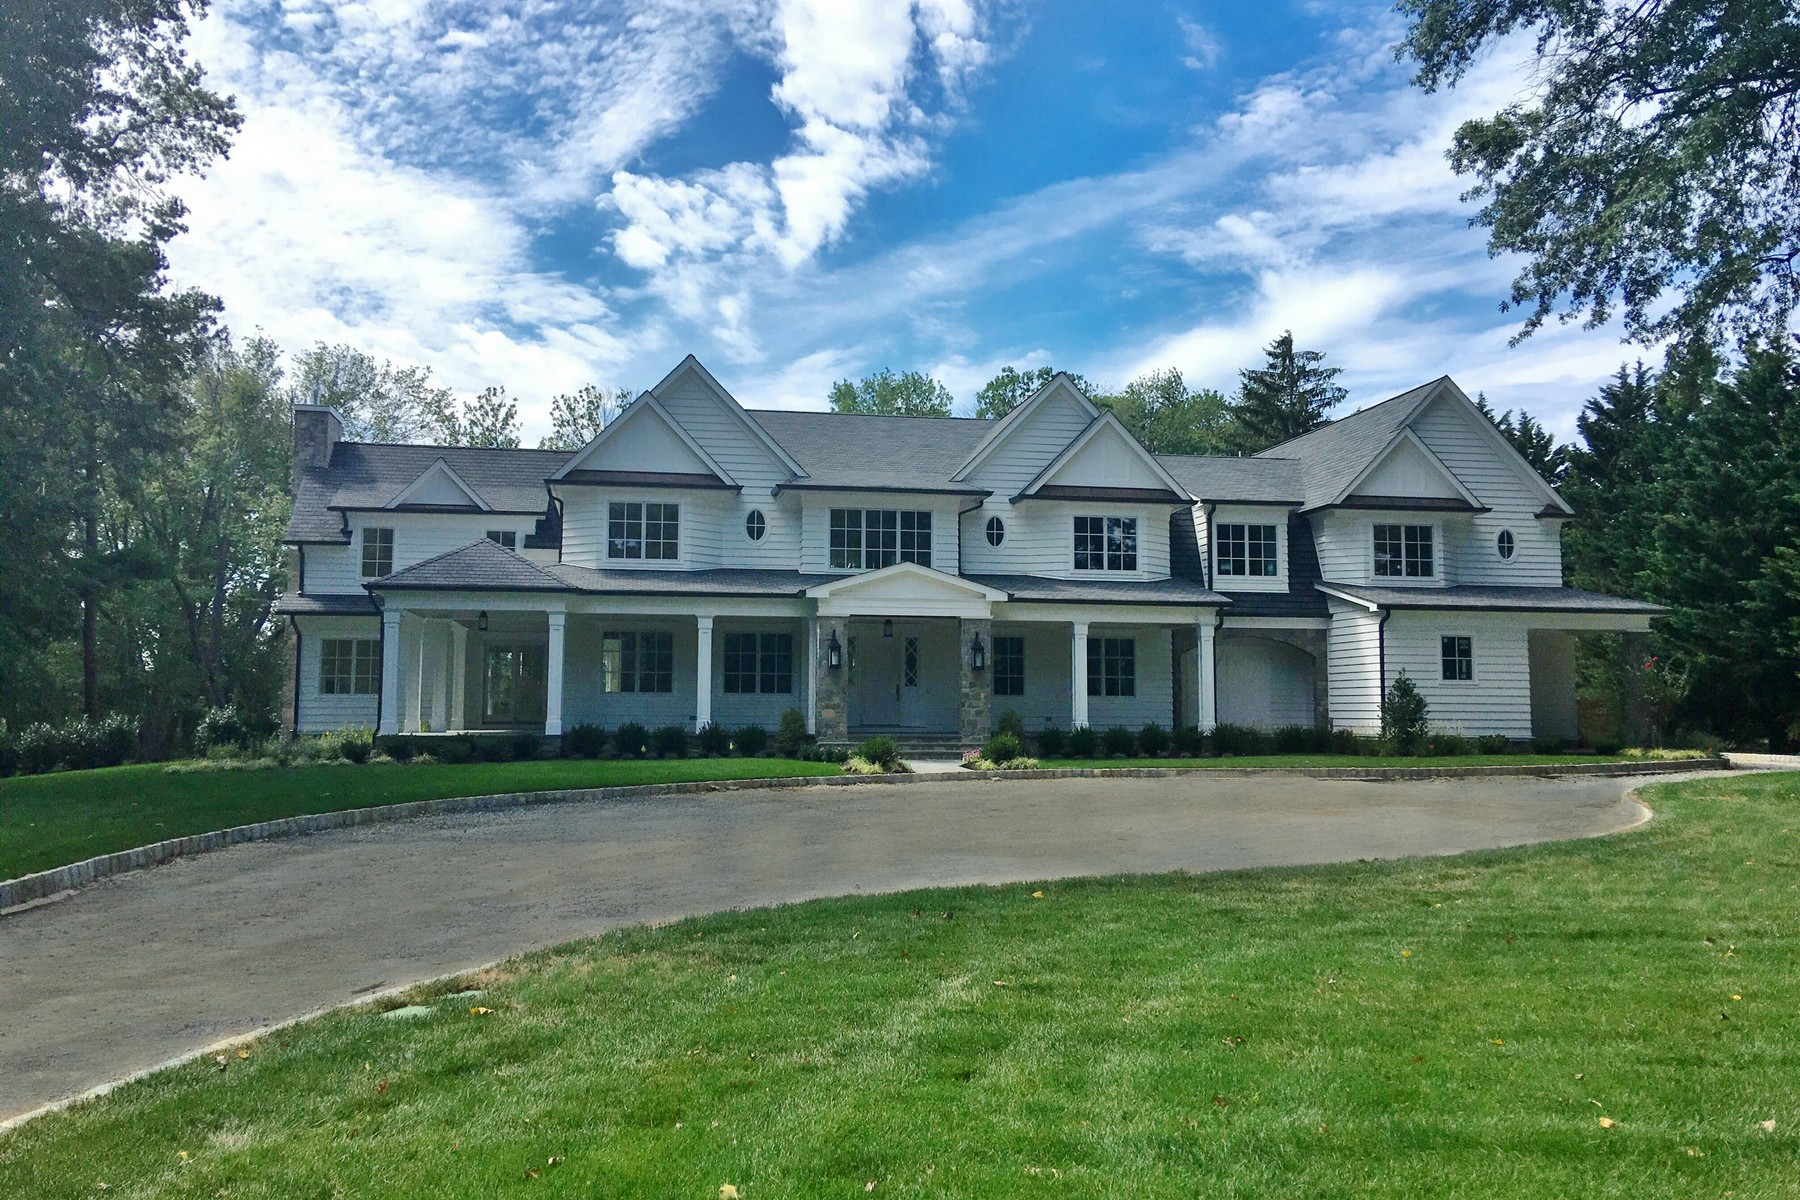 Single Family Home for Sale at Perfecting The Style of Living 20 Conover Ln Rumson, New Jersey, 07760 United States